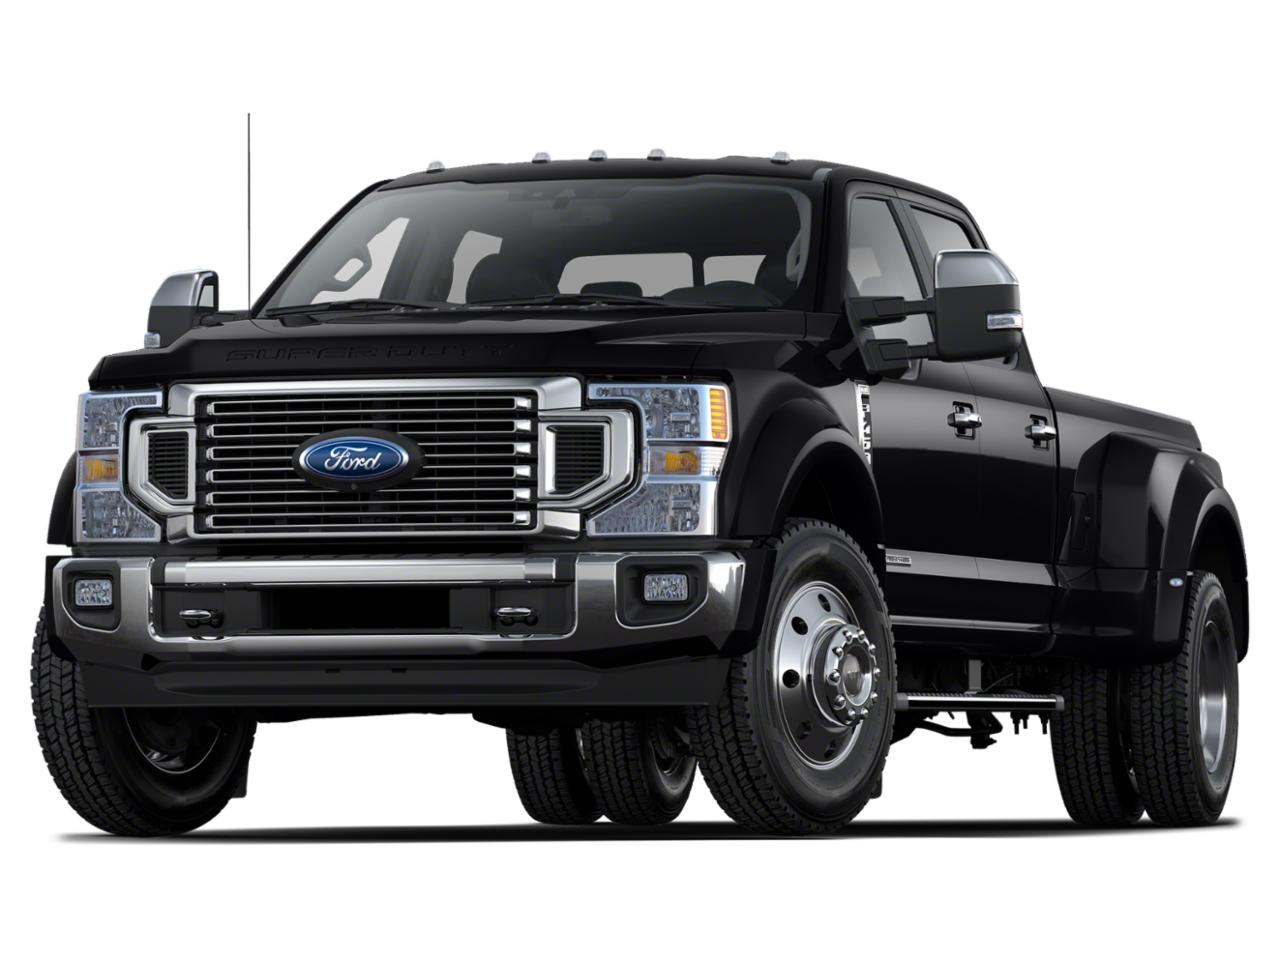 2020 Ford Super Duty F-450 DRW Vehicle Photo in Colorado Springs, CO 80920